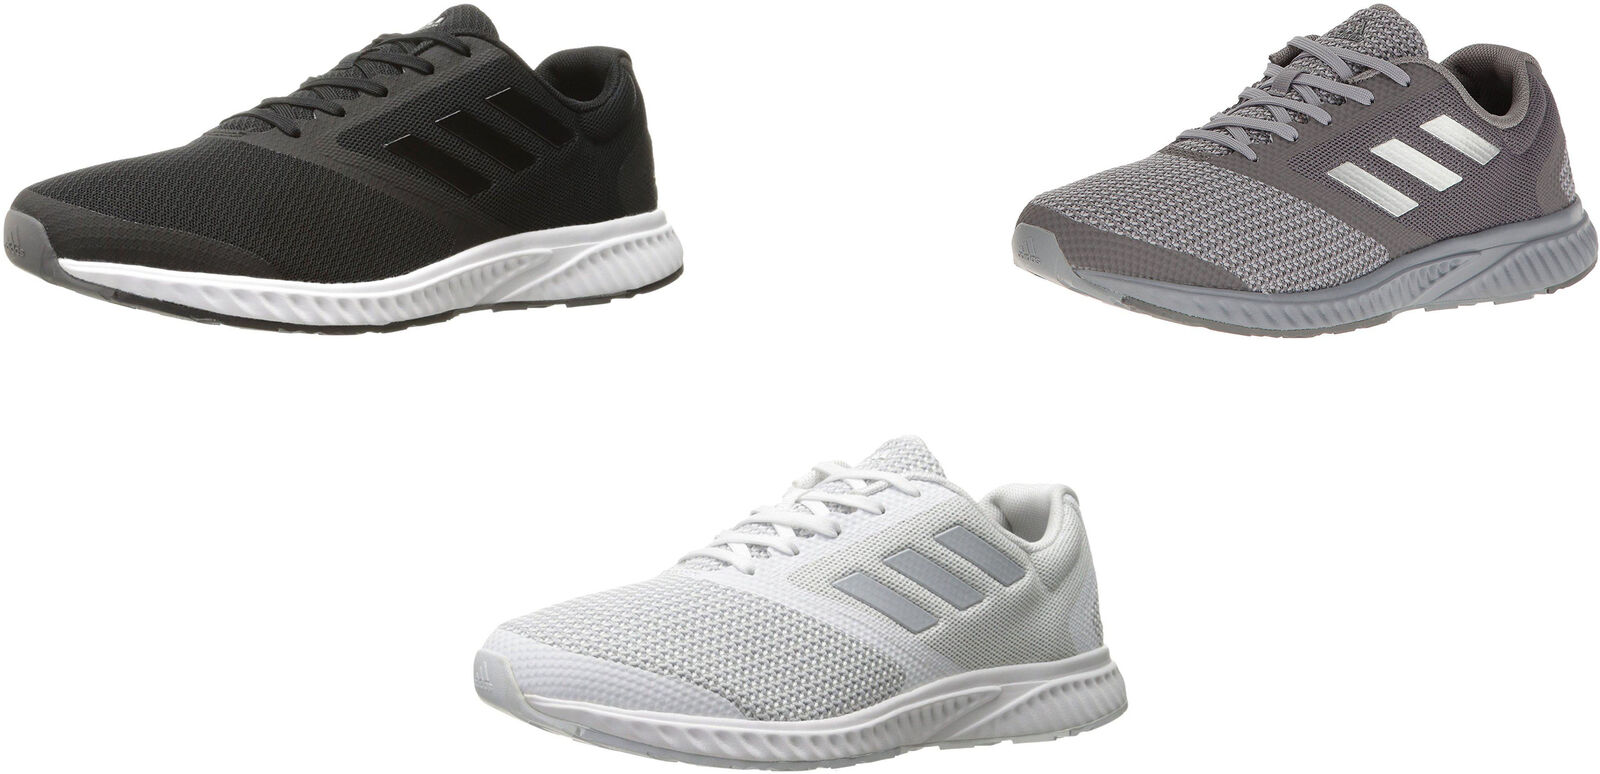 Adidas Men's Edge RC M Running shoes, 3 colors